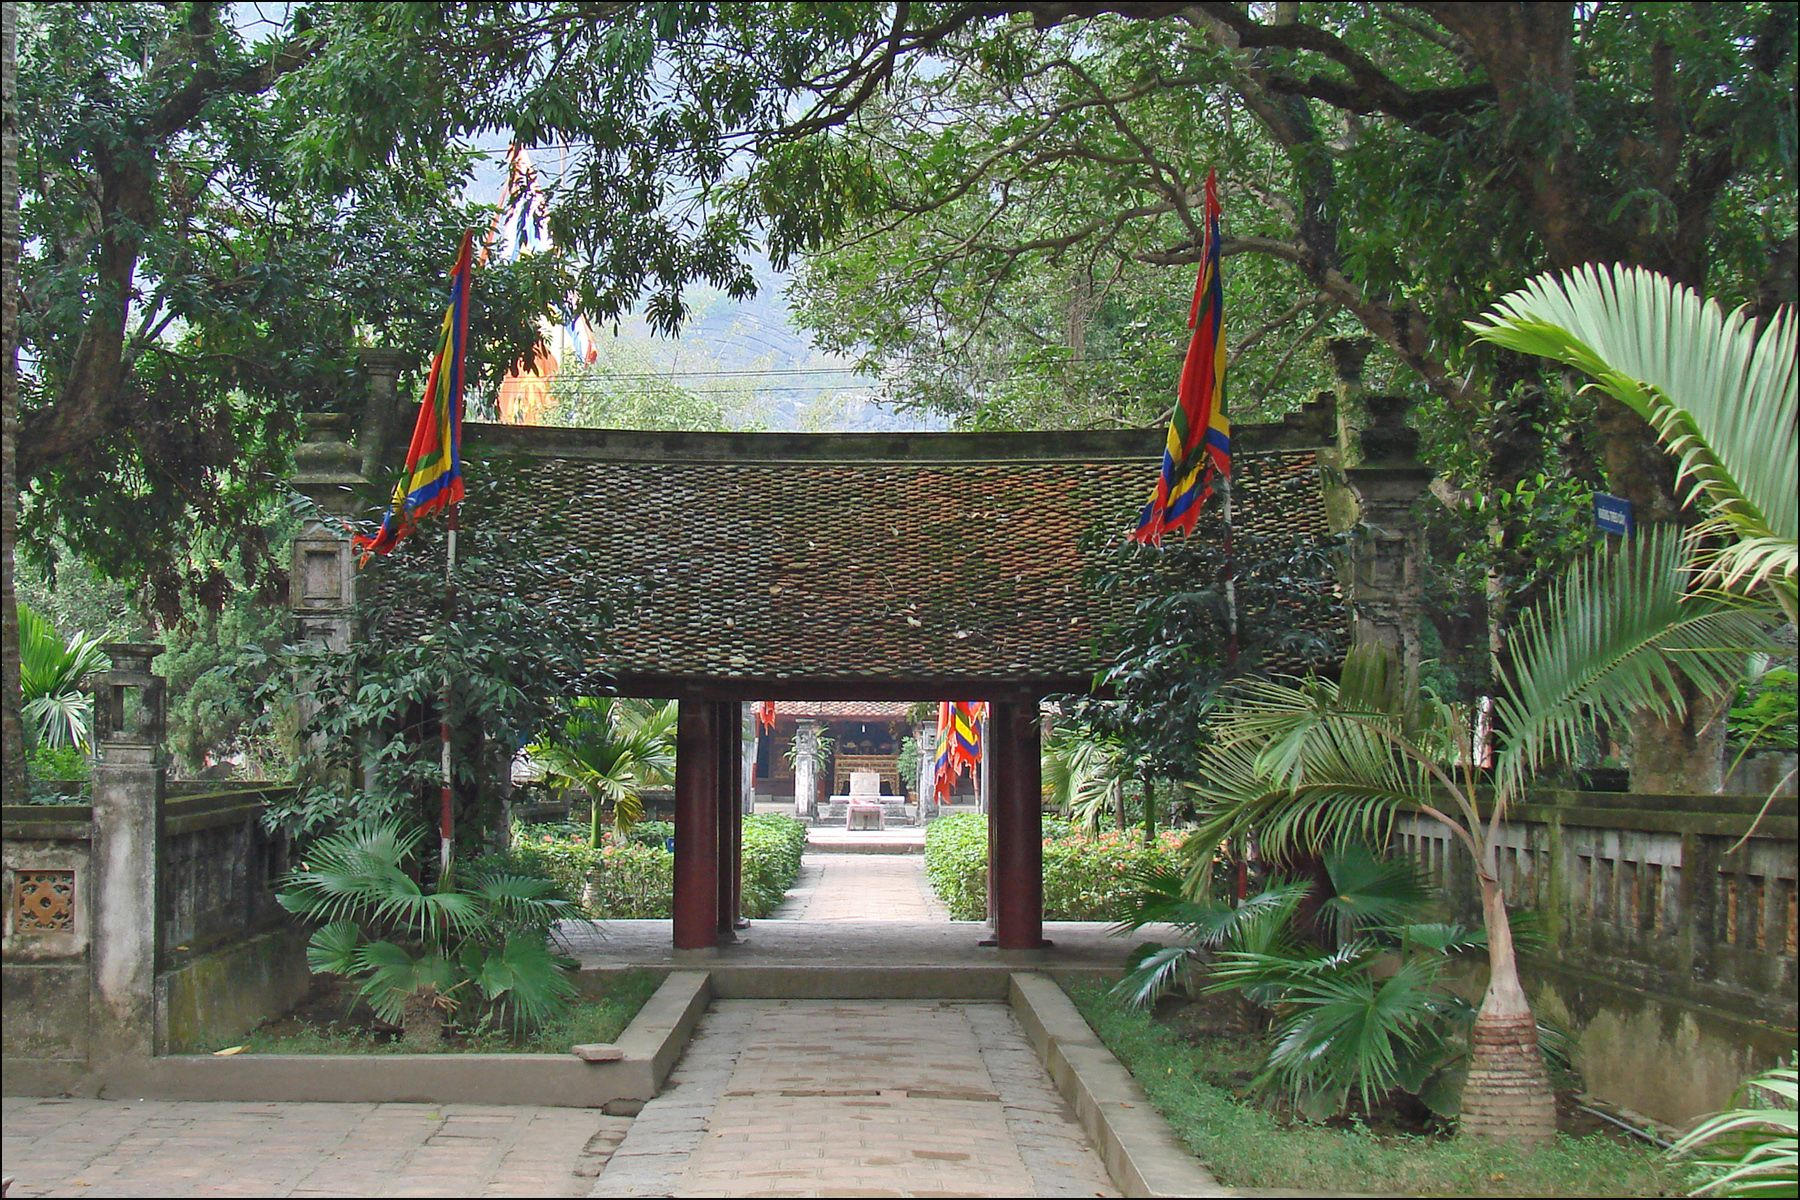 Entrance to Le Dai Hanh Temple